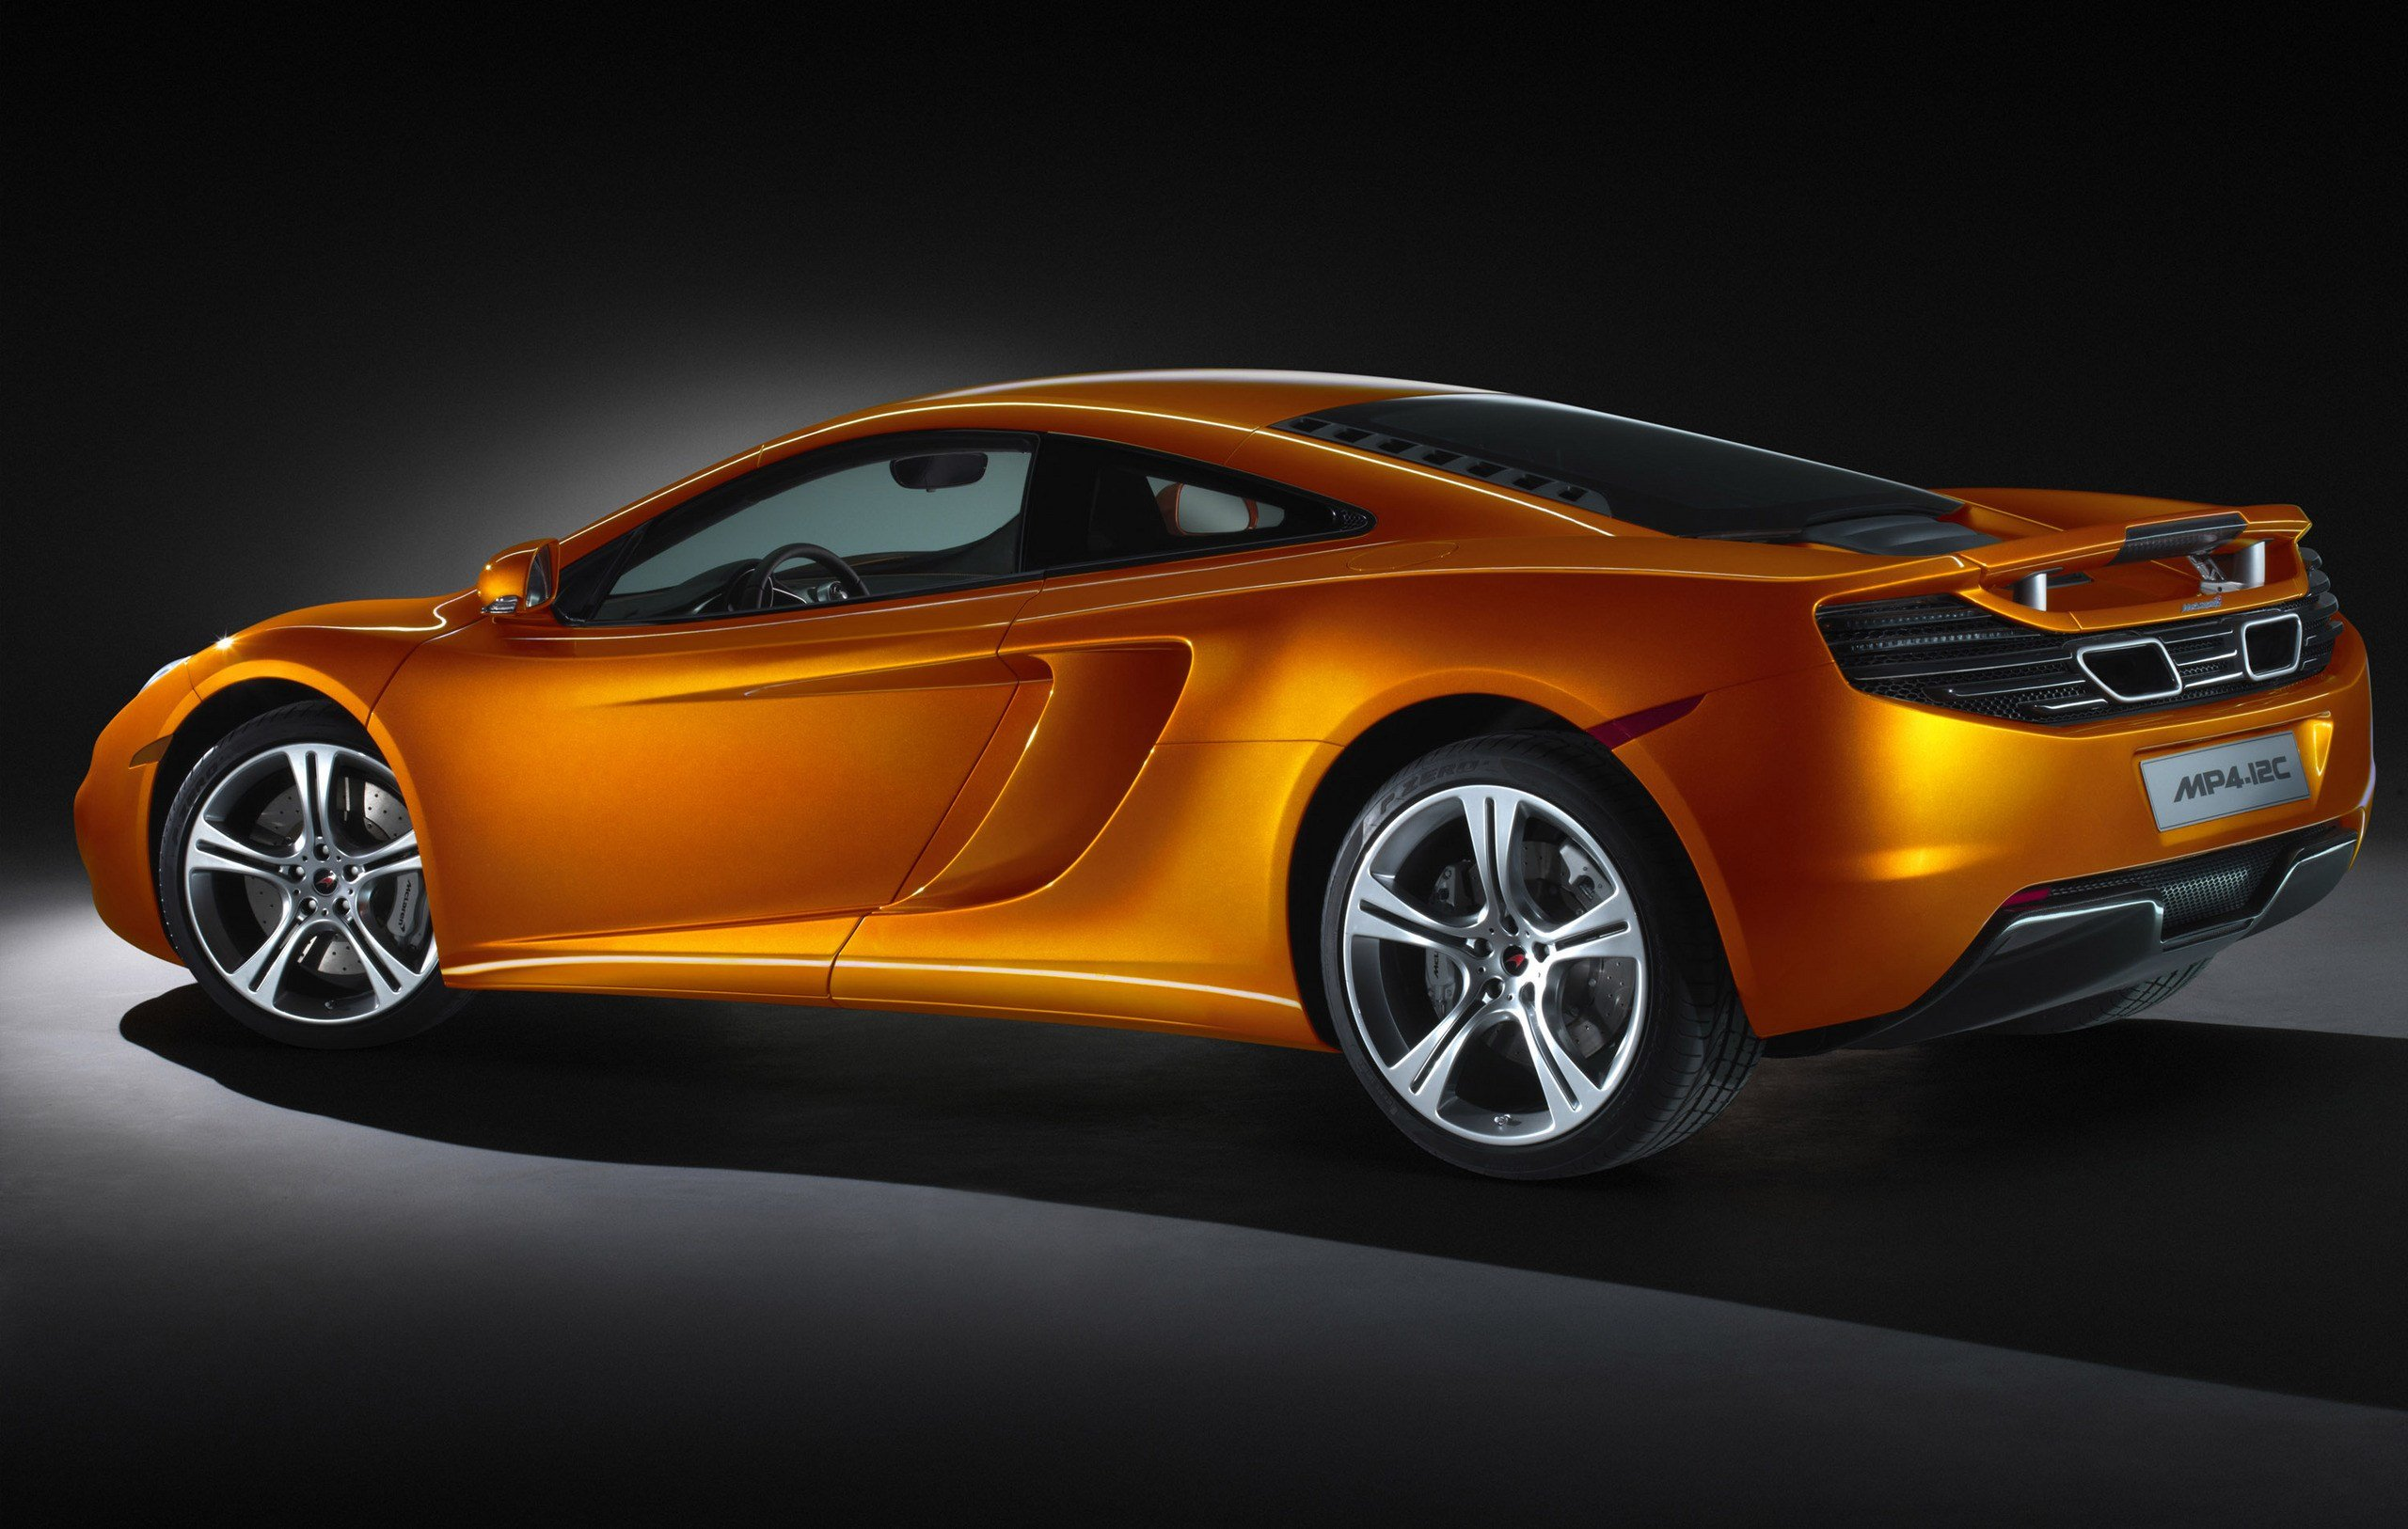 New Exotic Cars Images Mclaren Mp4 12C Hd Wallpaper And On This Month